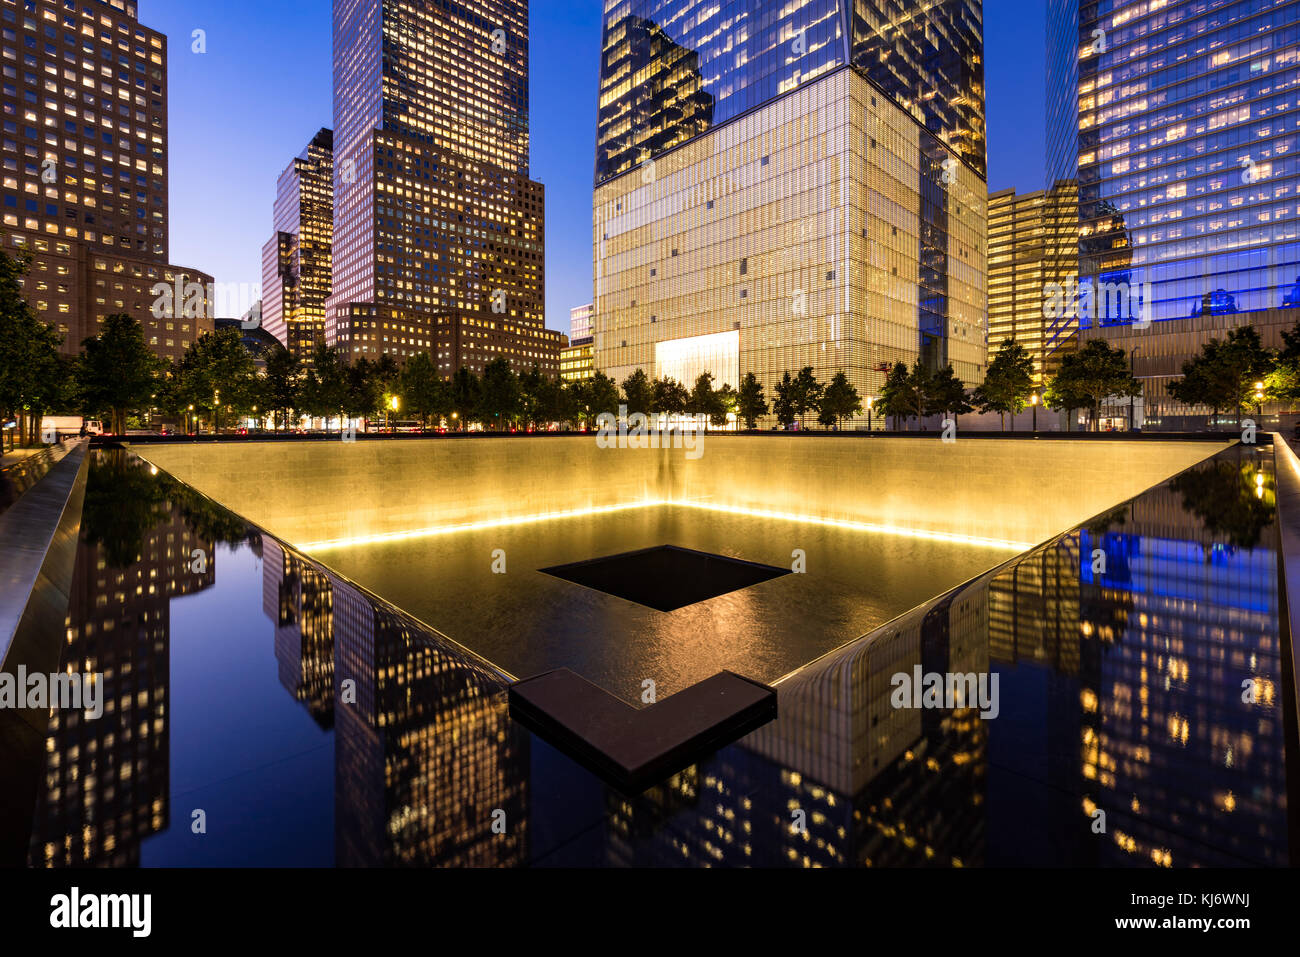 La piscina reflectante del Norte iluminado al atardecer con vista de One World Trade Center. Lower Manhattan, 9/11 Imagen De Stock